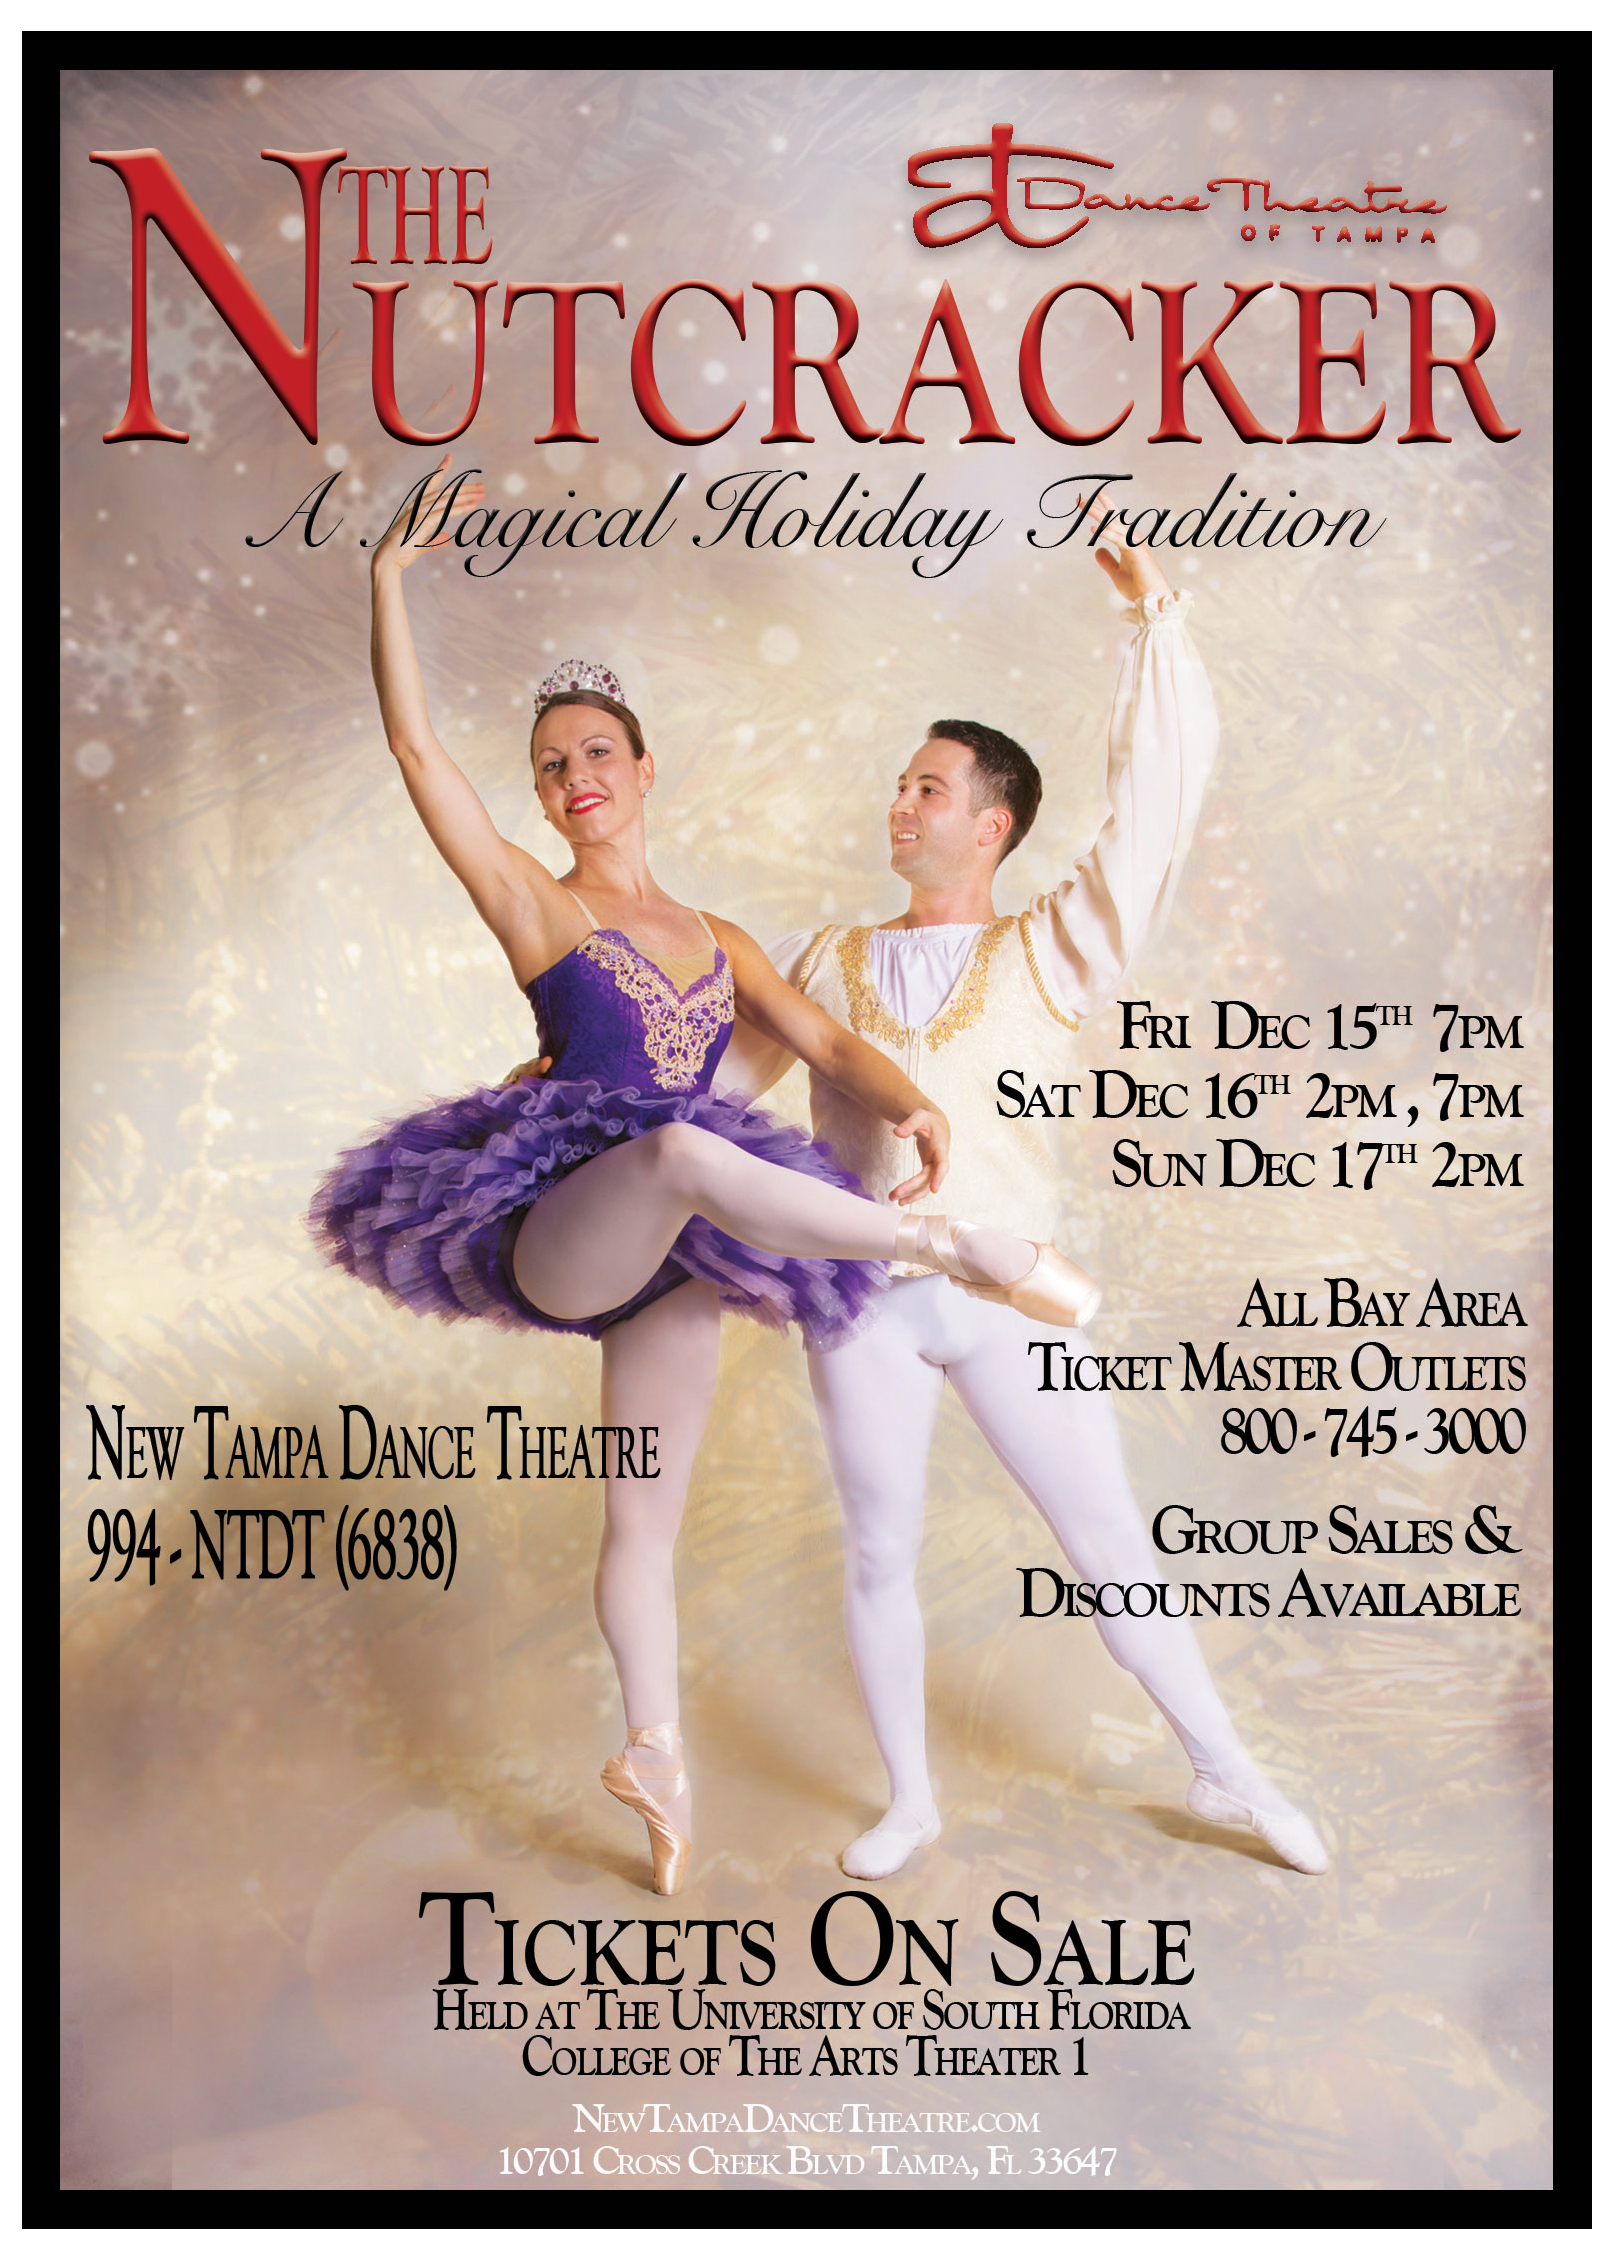 DTT's 18th Annual Production of The Nutcracker